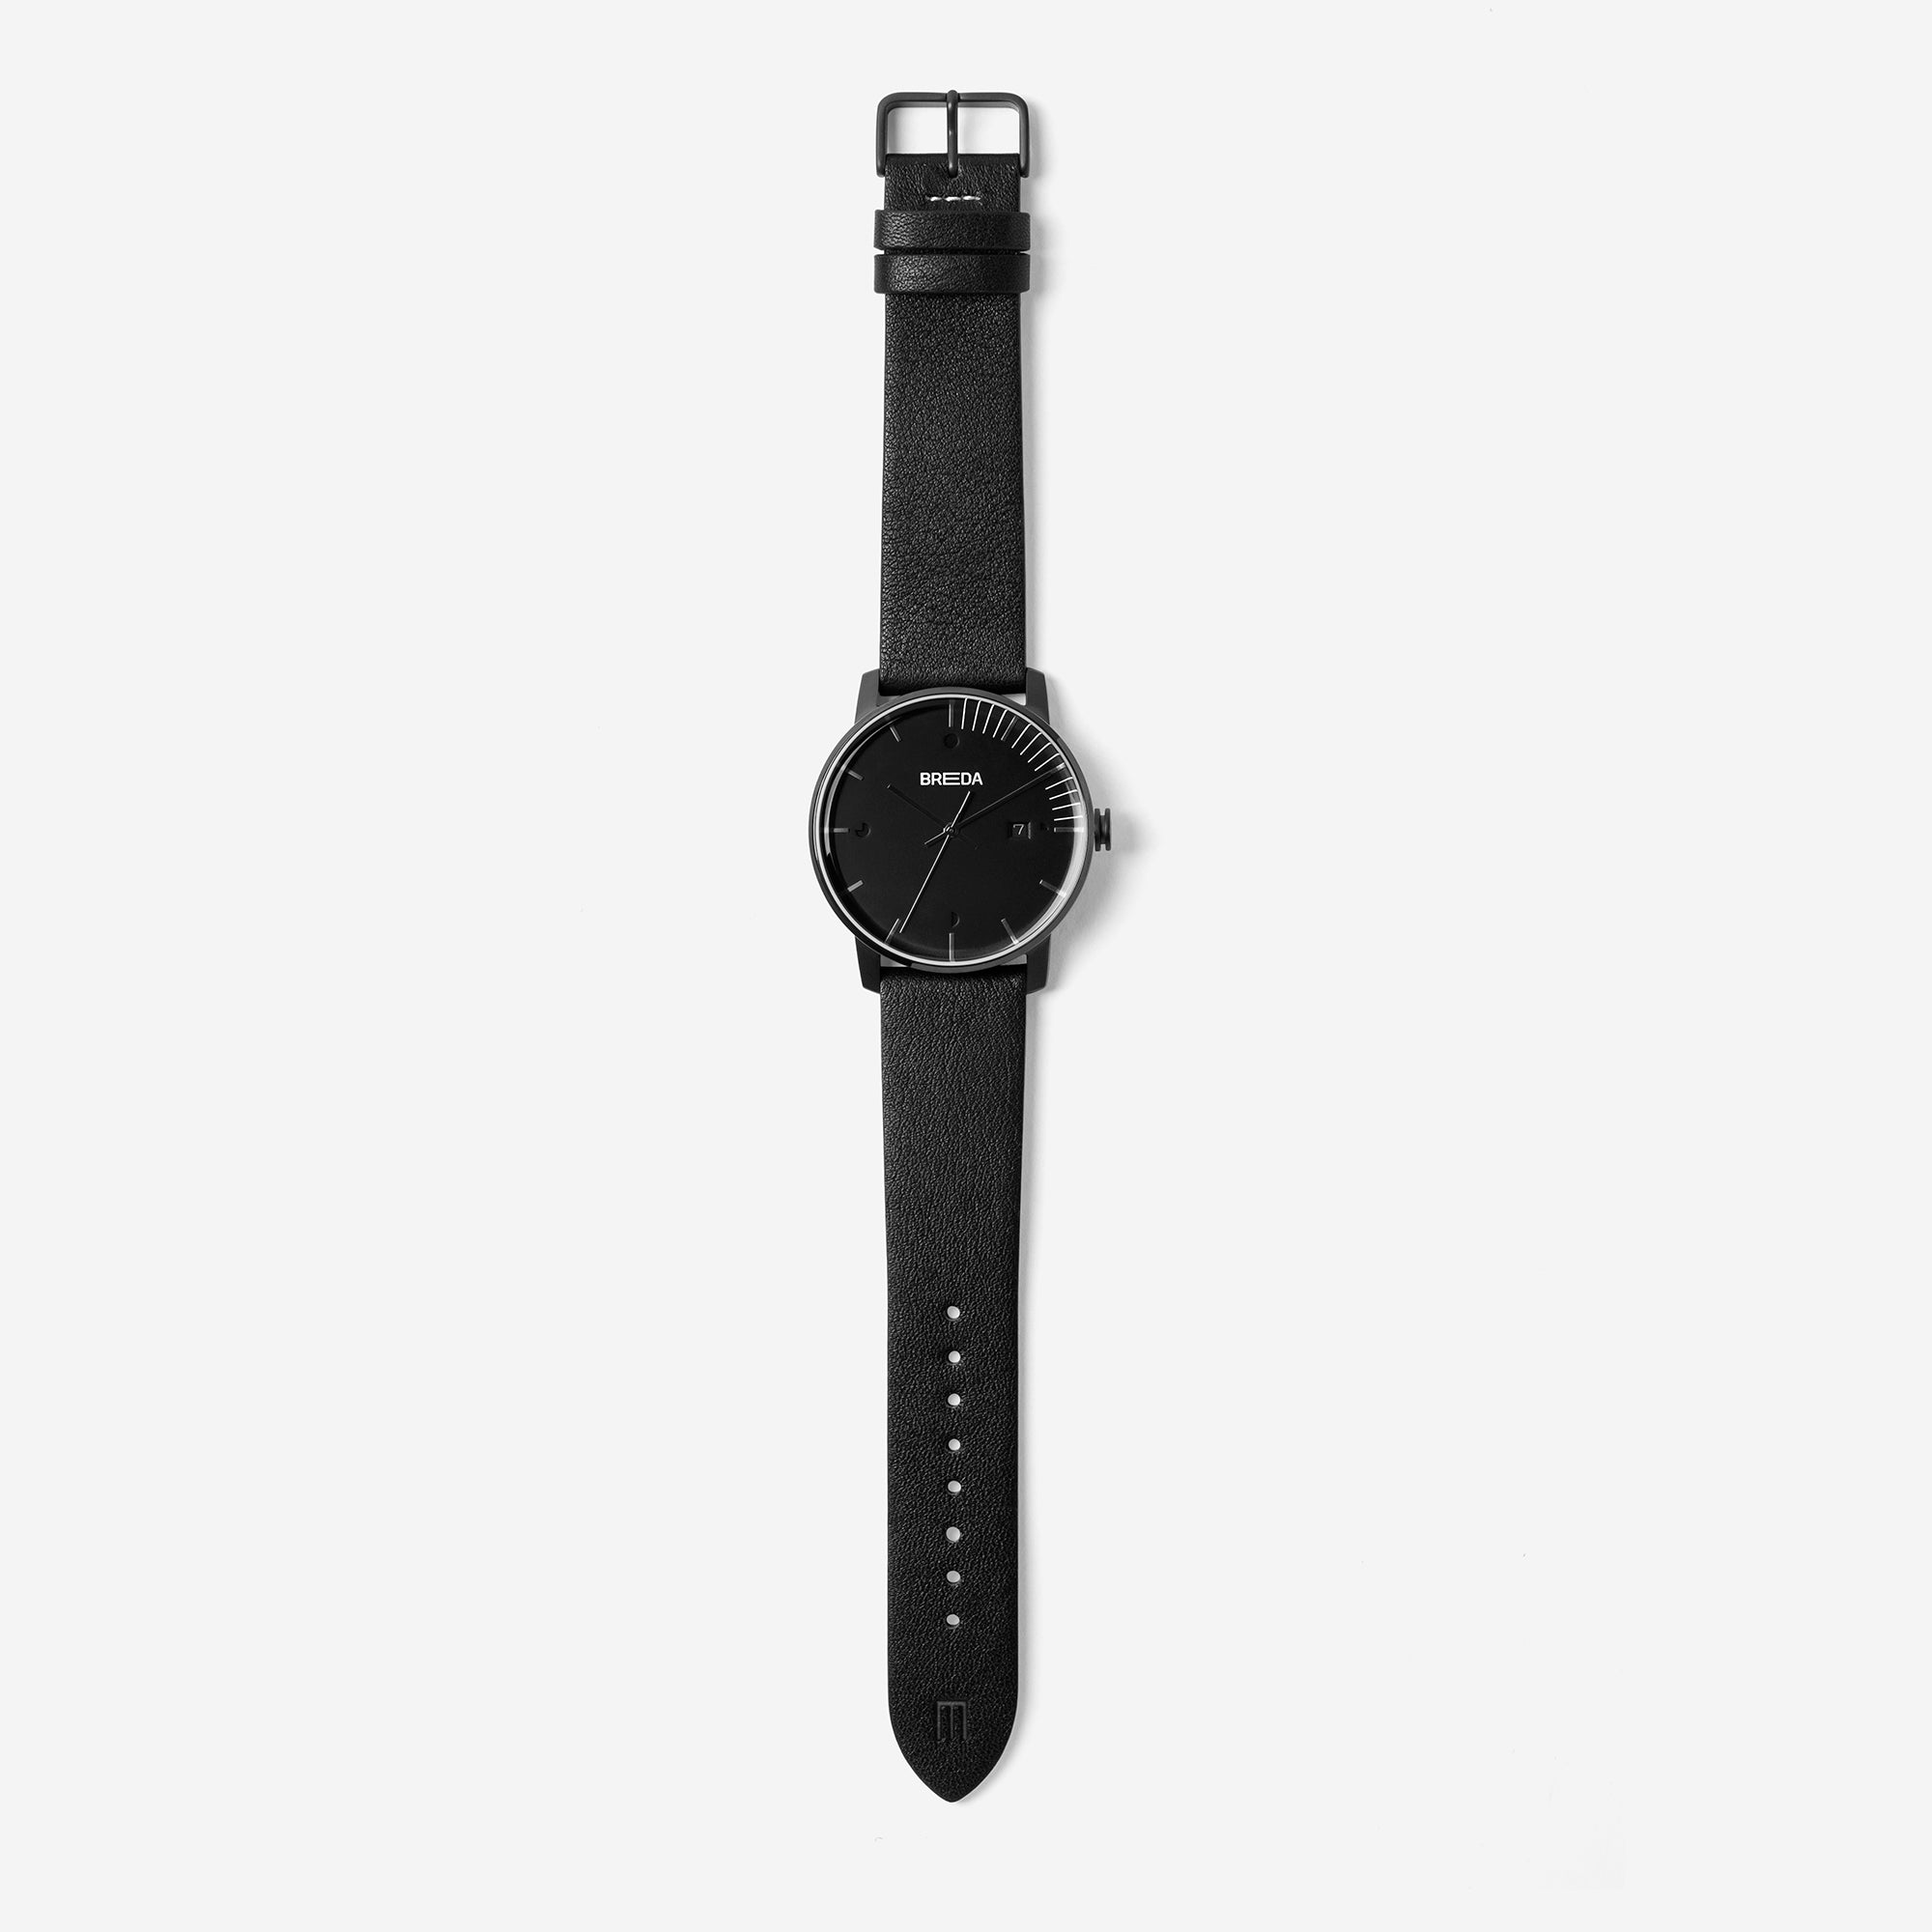 //cdn.shopify.com/s/files/1/0879/6650/products/breda-phase-9000f-black-black-watch-long_a6351400-1ab7-4071-847c-c3e9f7a73df5_1024x1024.jpg?v=1543262601